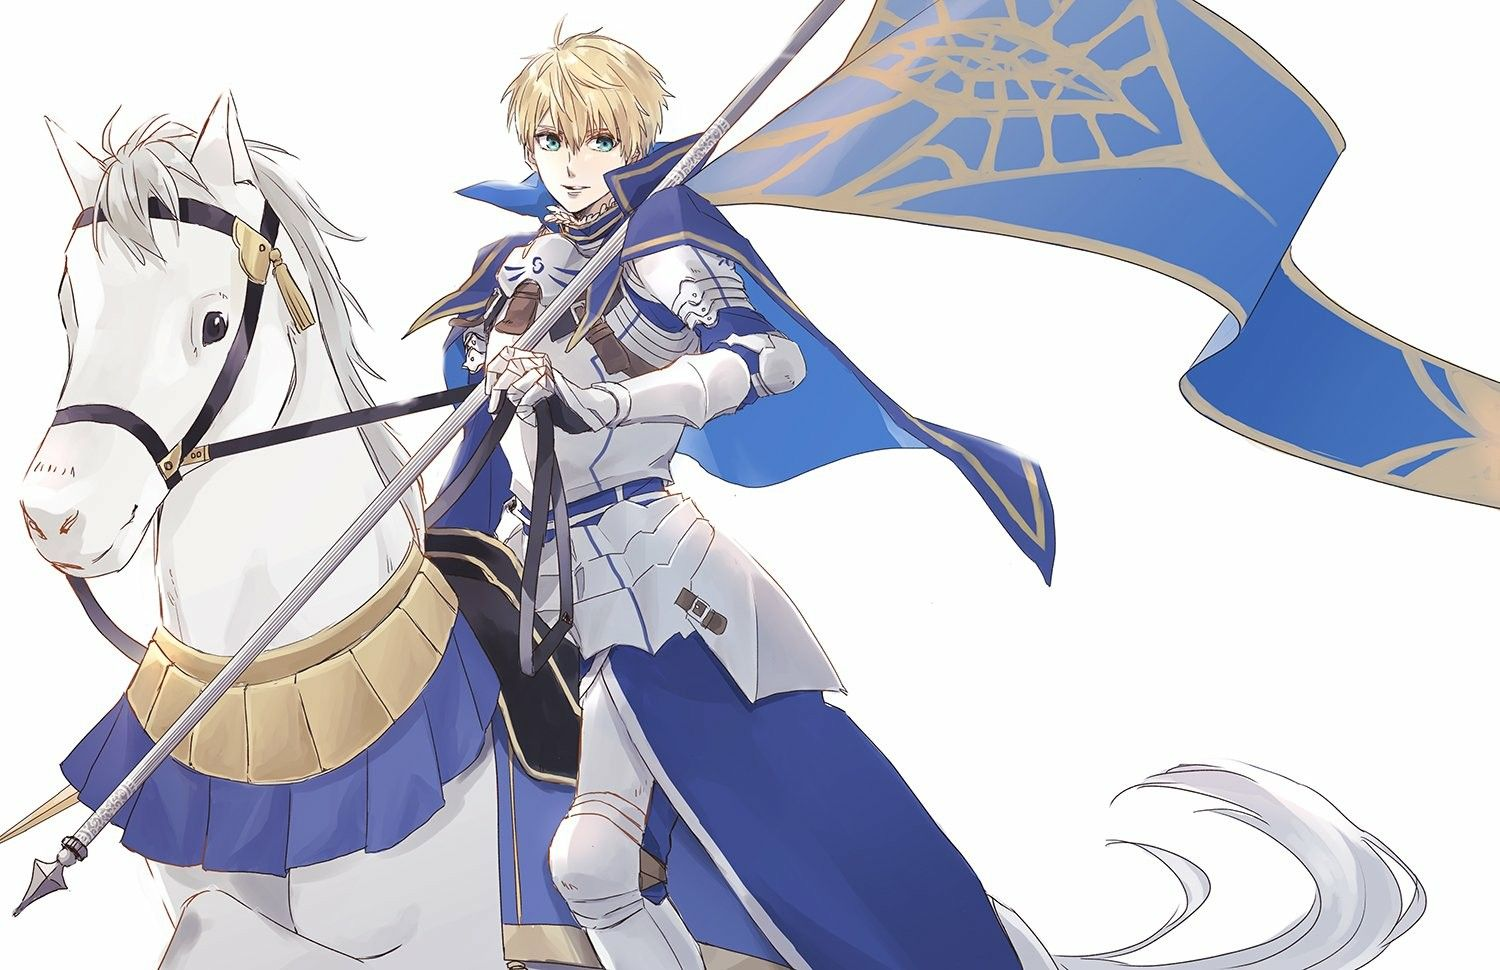 Arthur Lancer Anime drawing styles, Anime characters